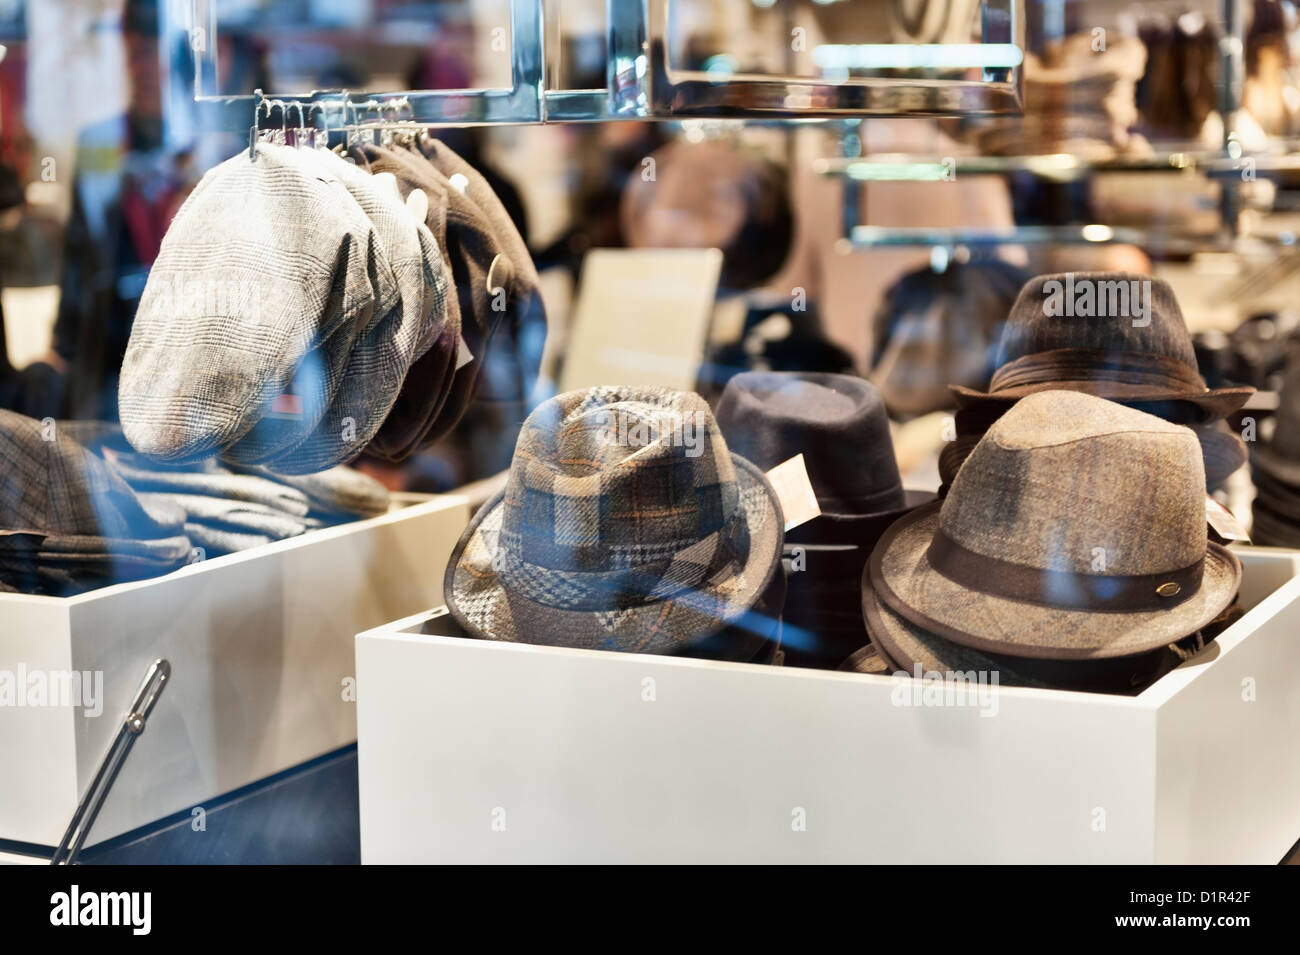 2522d89d1 Paris, France: Men's hats for sale - in the window of a department store